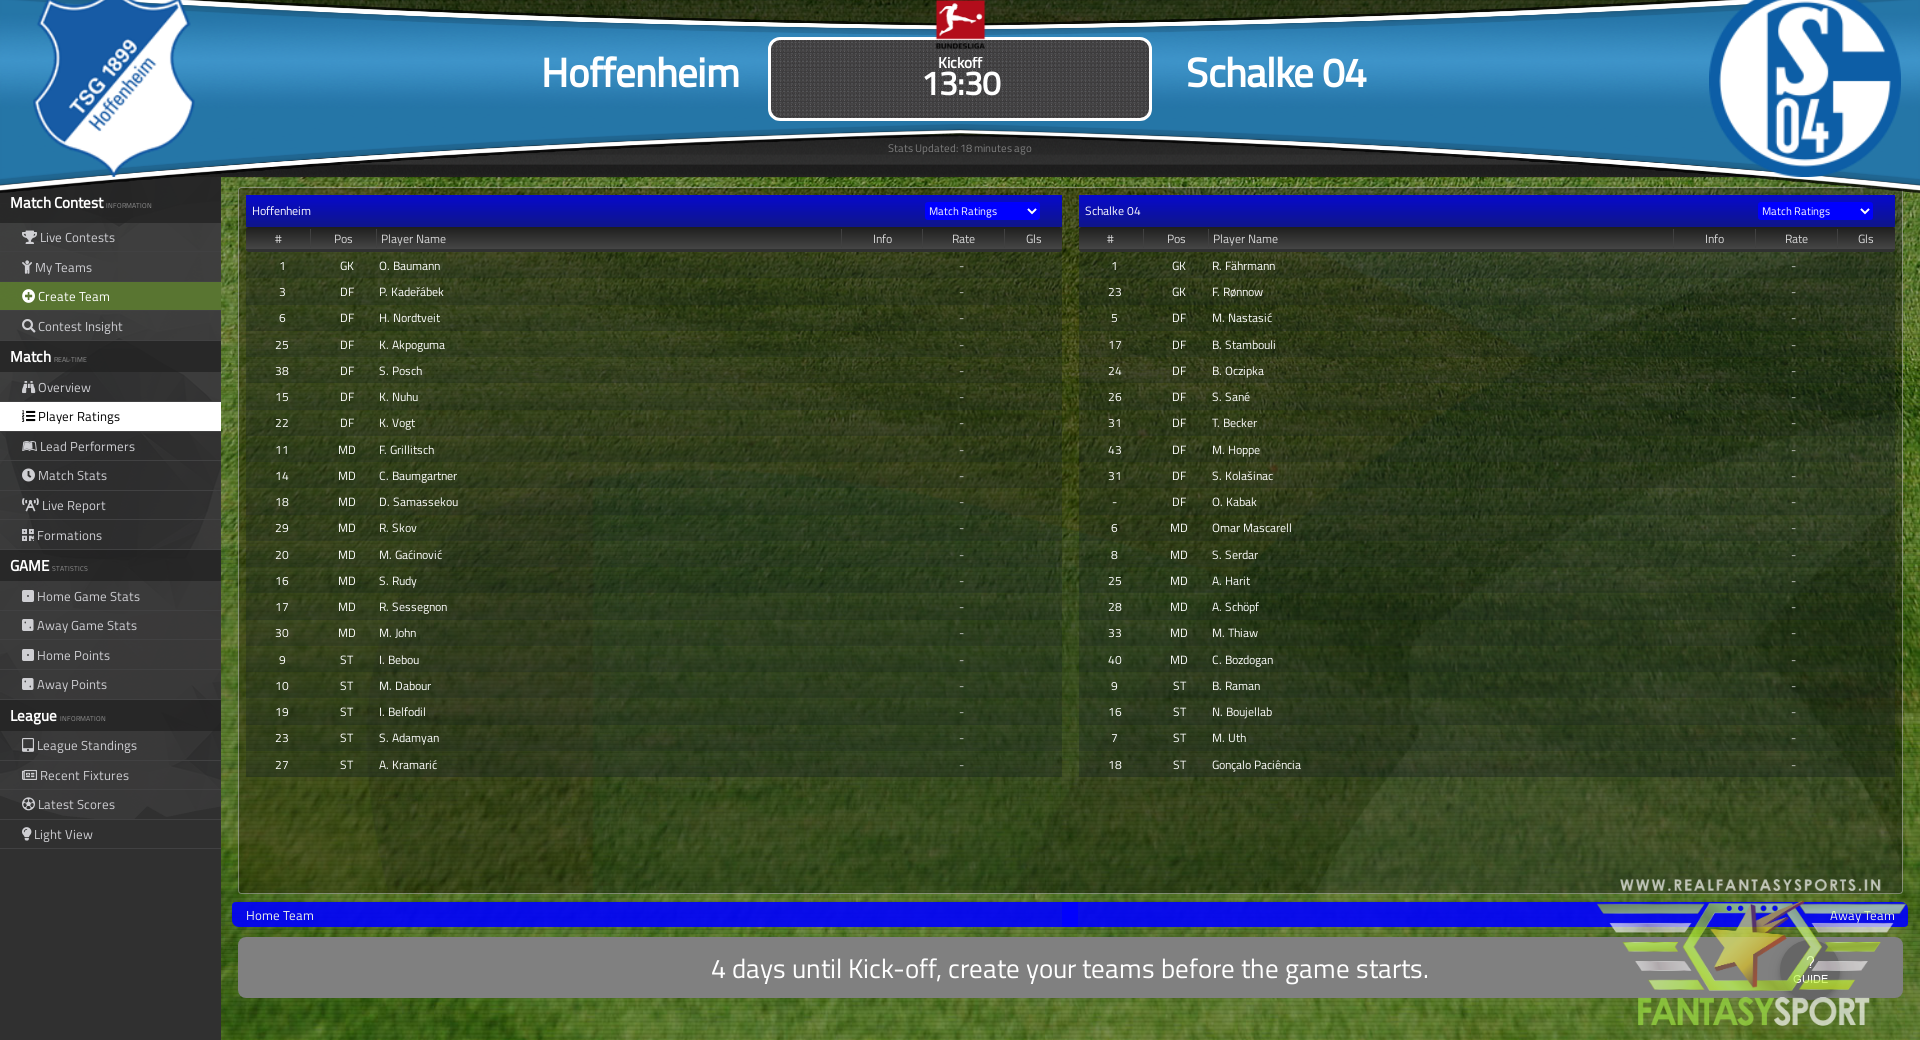 Fantasy Football Hoffenheim Vs Schalke 04 Saturday 8th May 2021